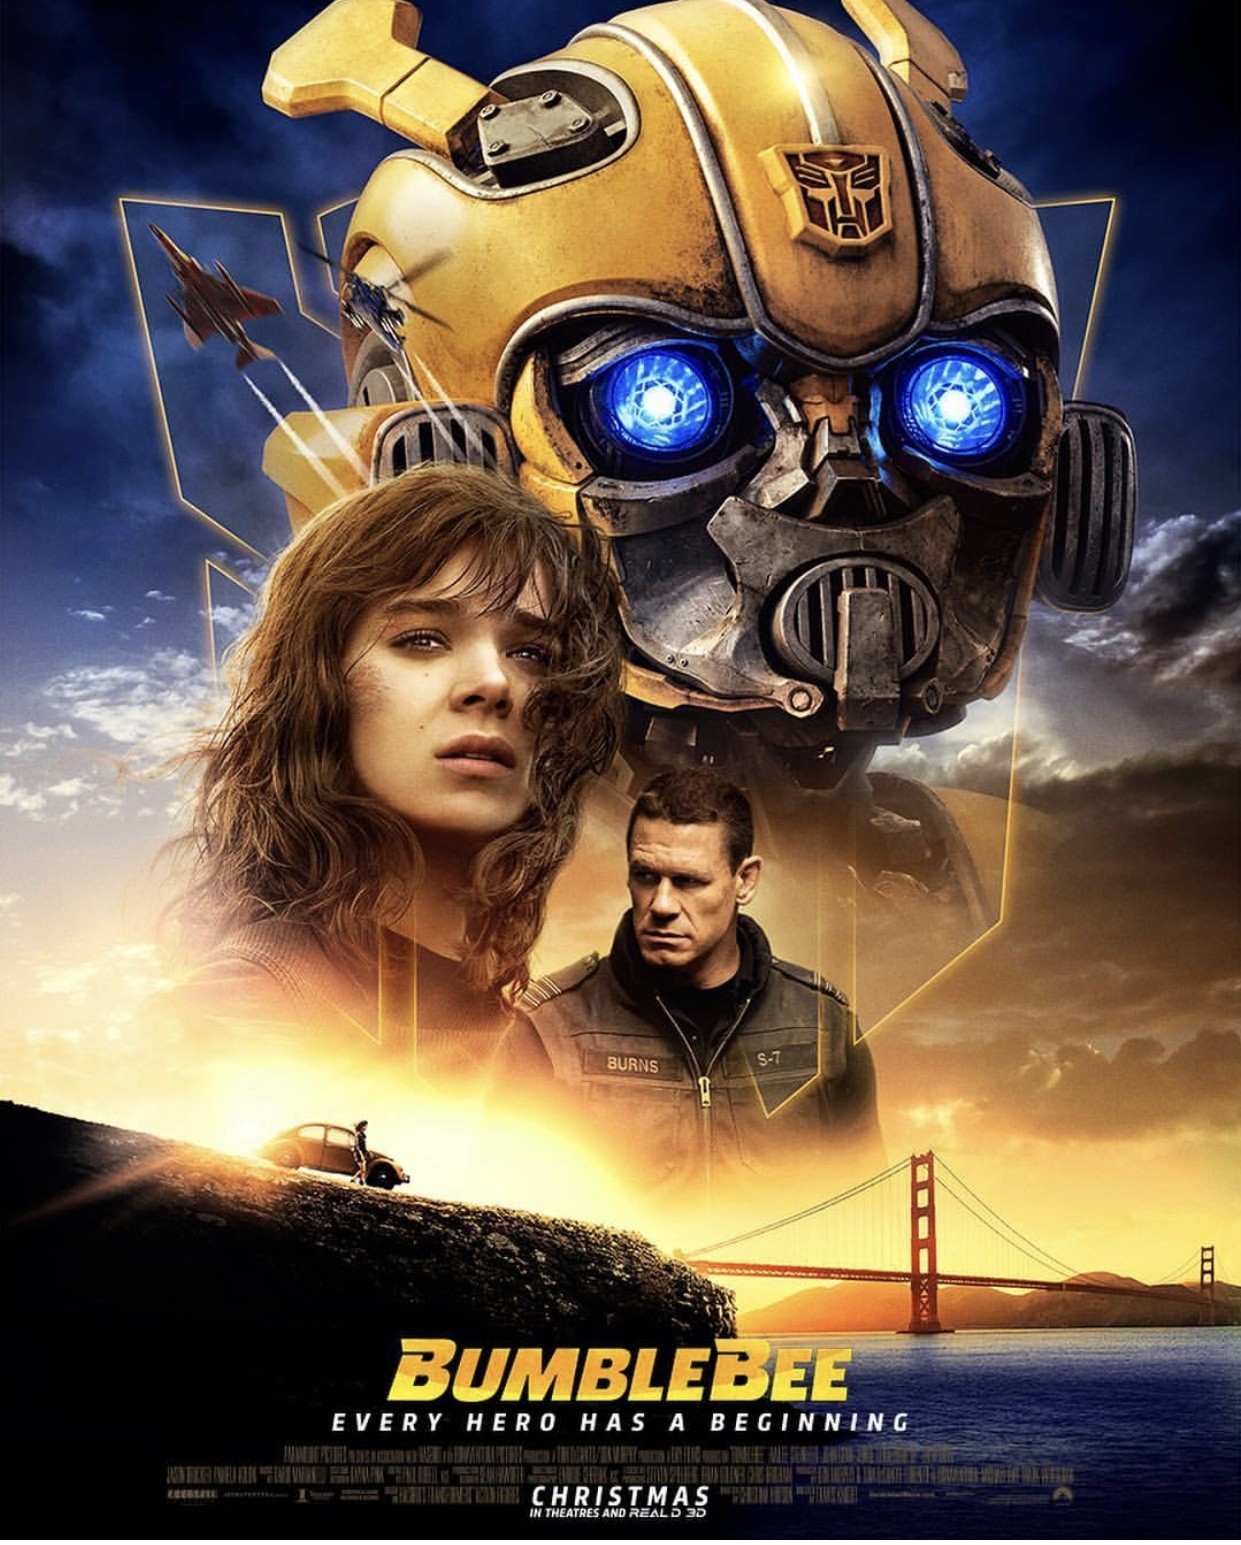 Transformers News: Transformers Bumblebee Rated PG-13, Important Rating Differences to Past Movies